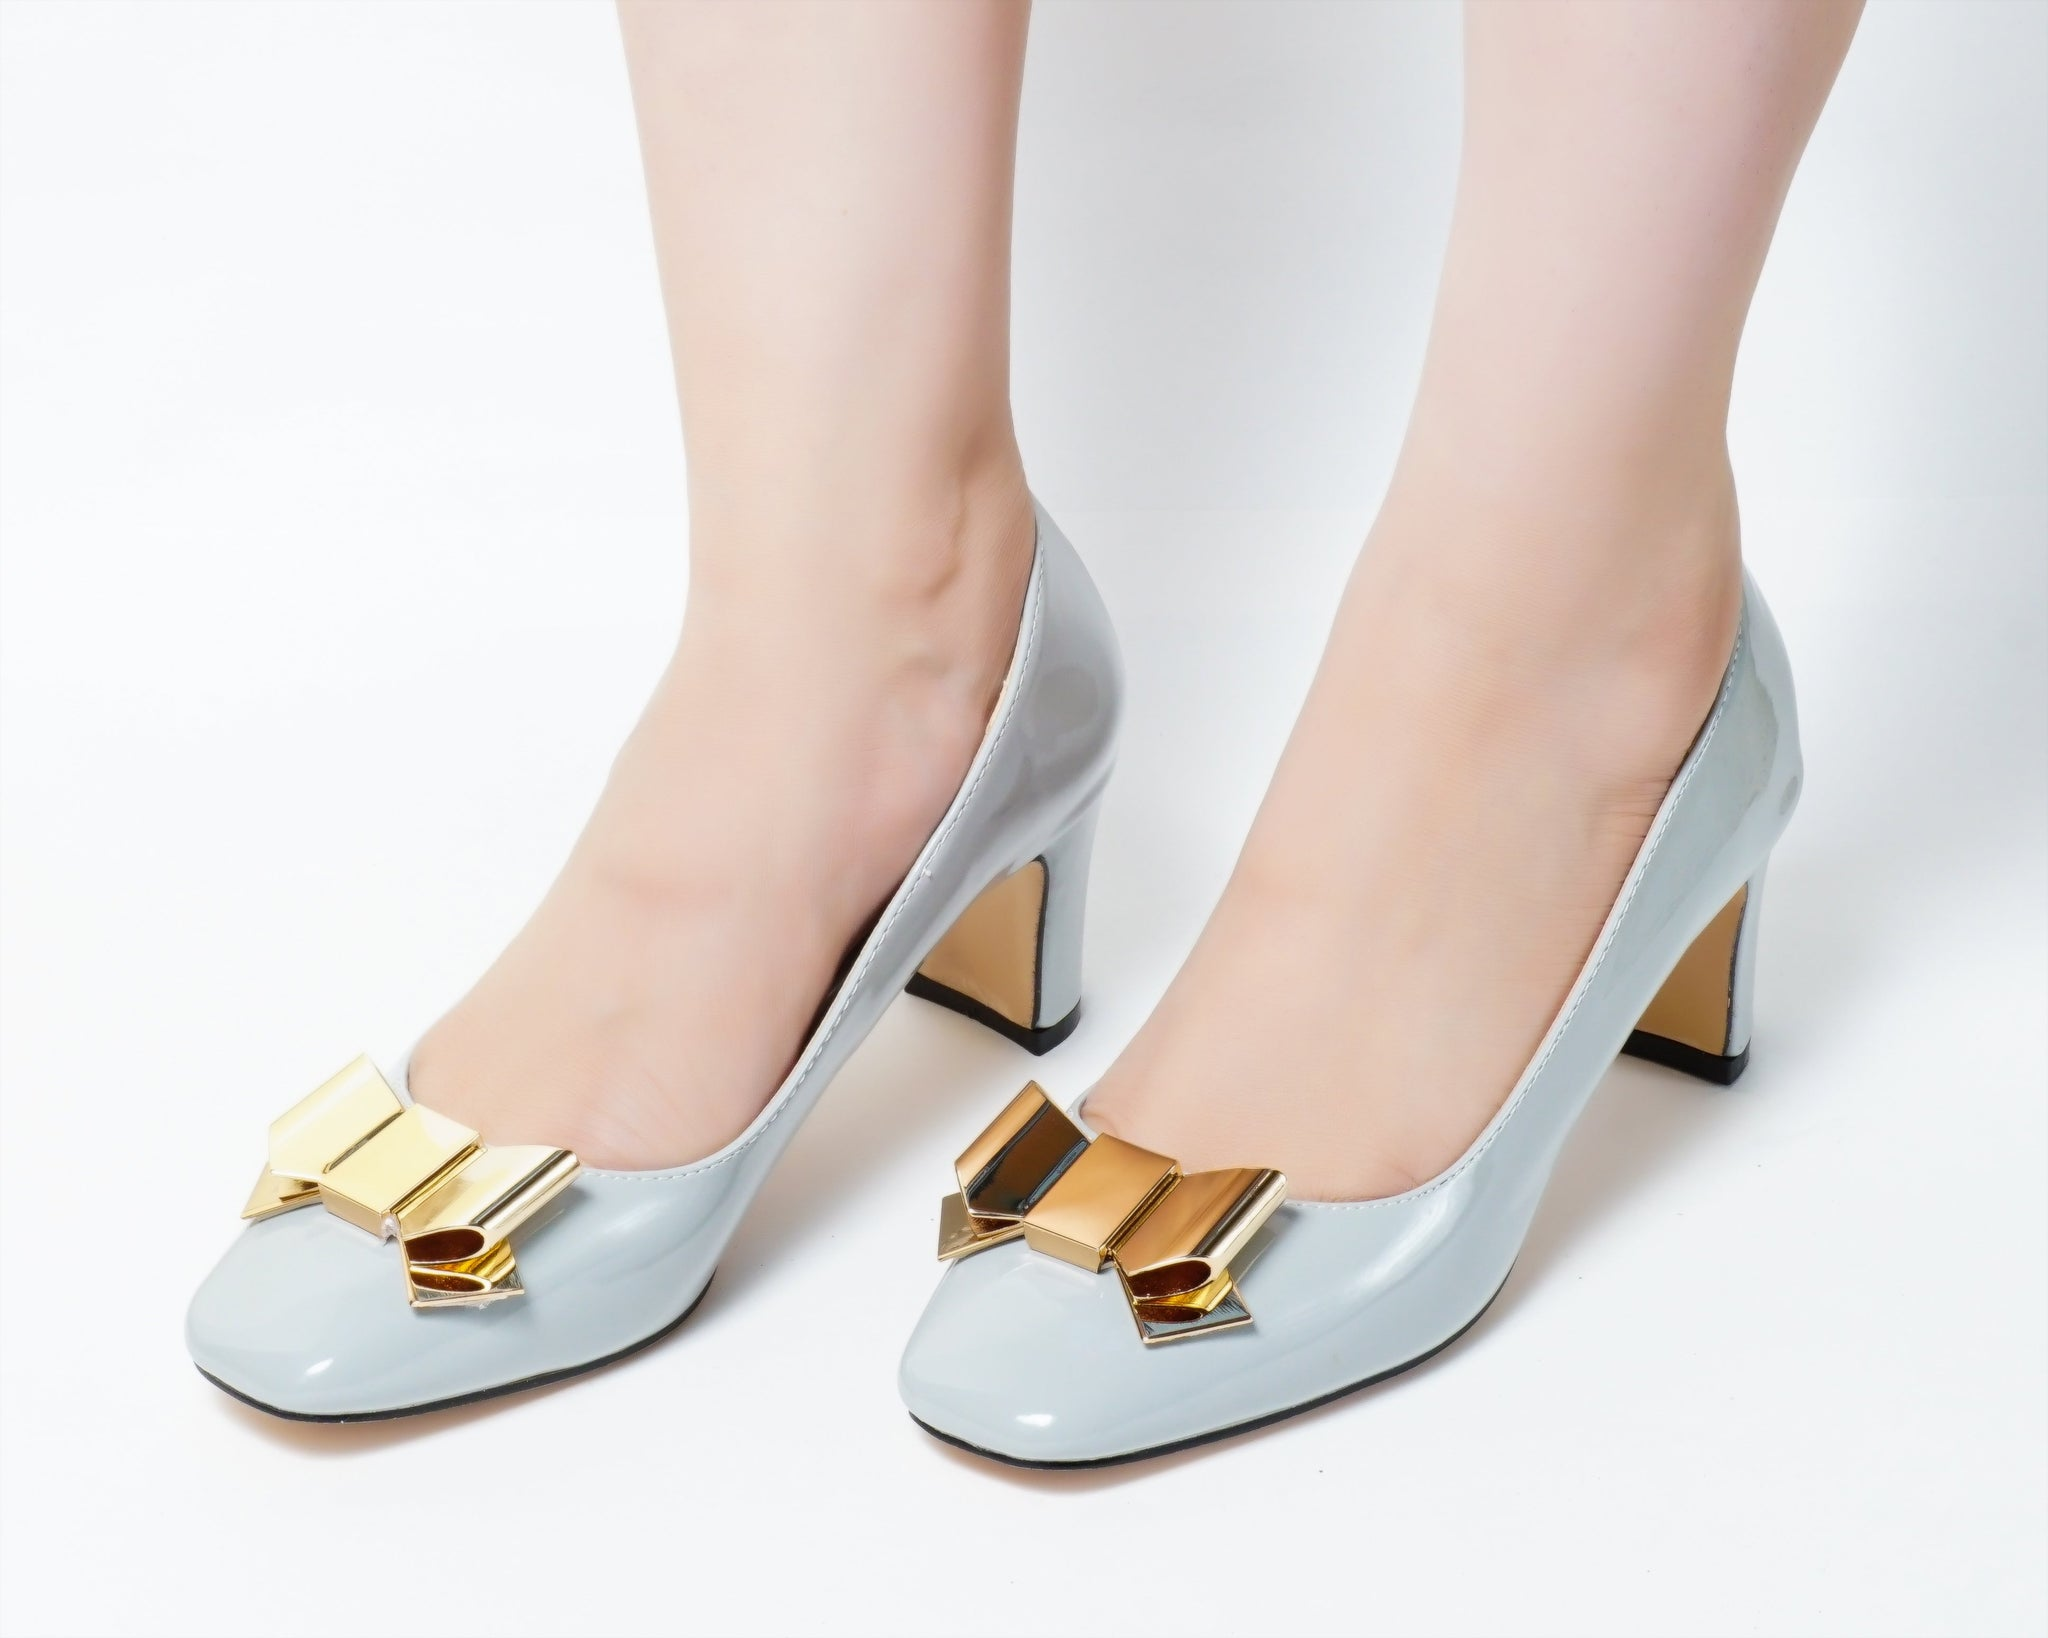 Wicked Grey | Pumps | Low heels | Dech barrouci